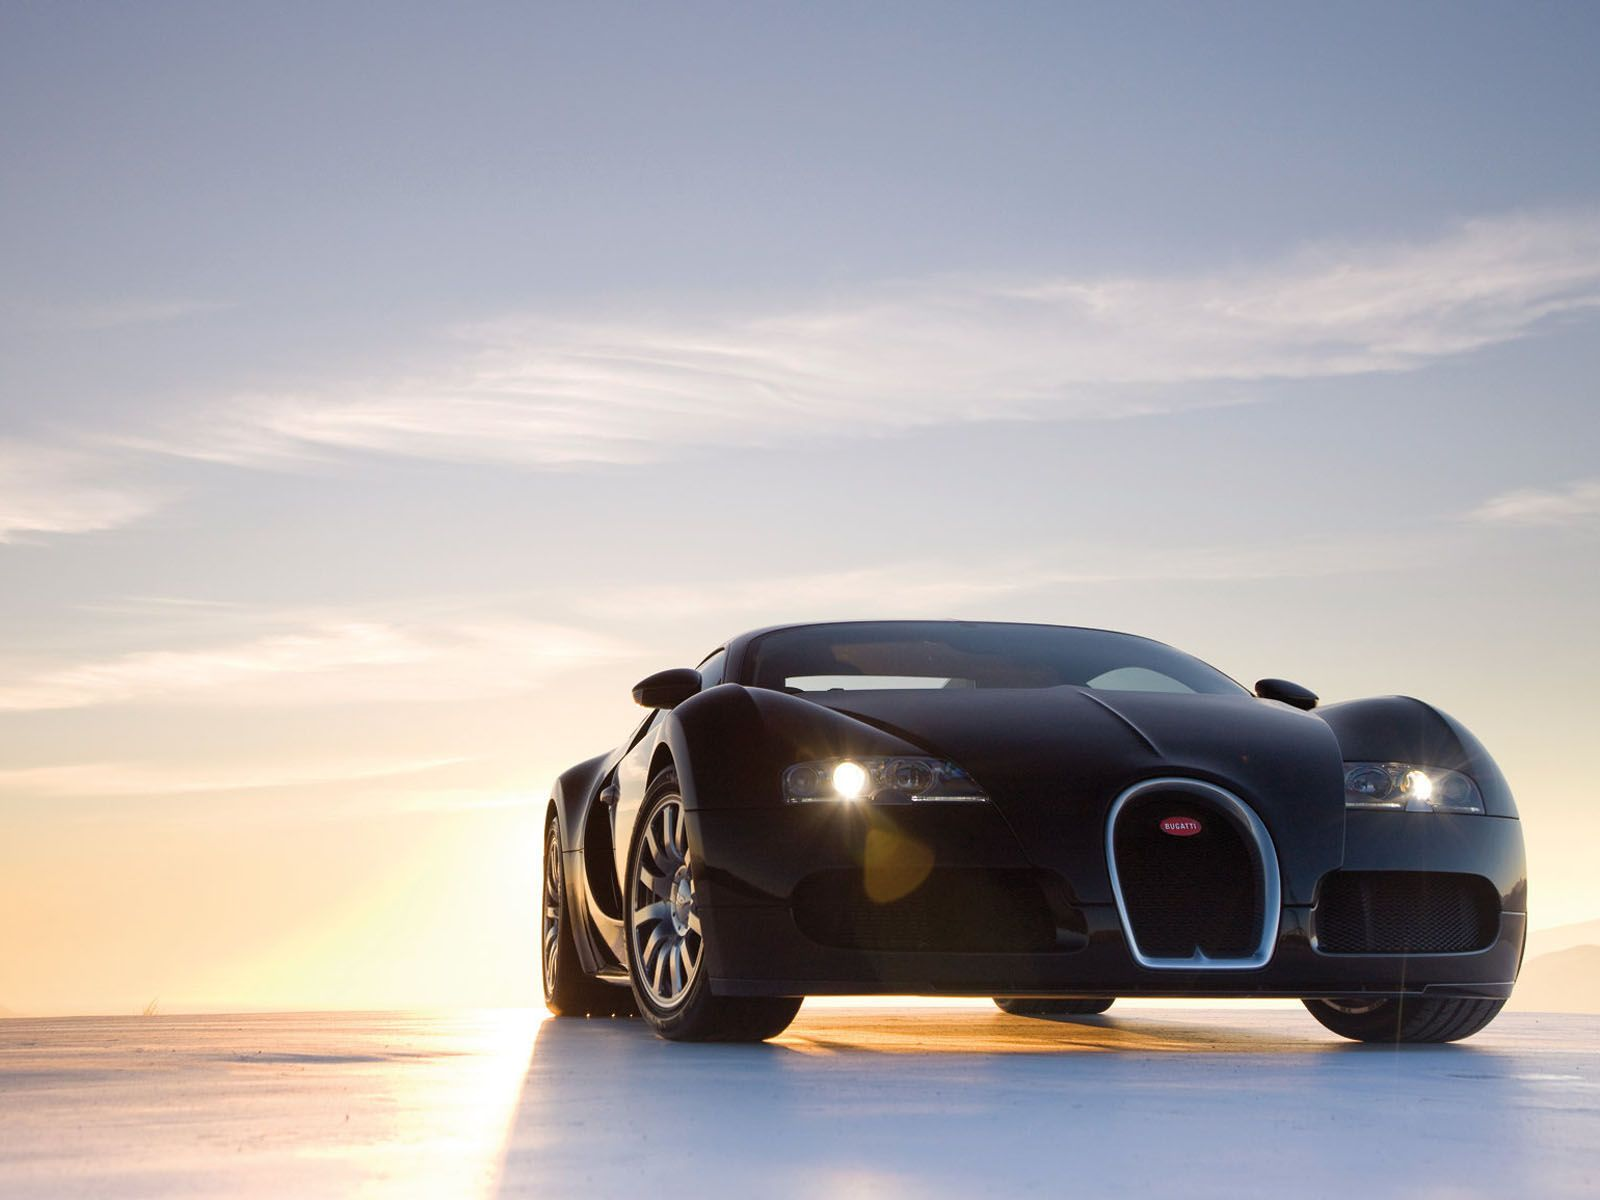 Mobili Bugatti ~ Download free bugatti wallpapers for your mobile phone most cars